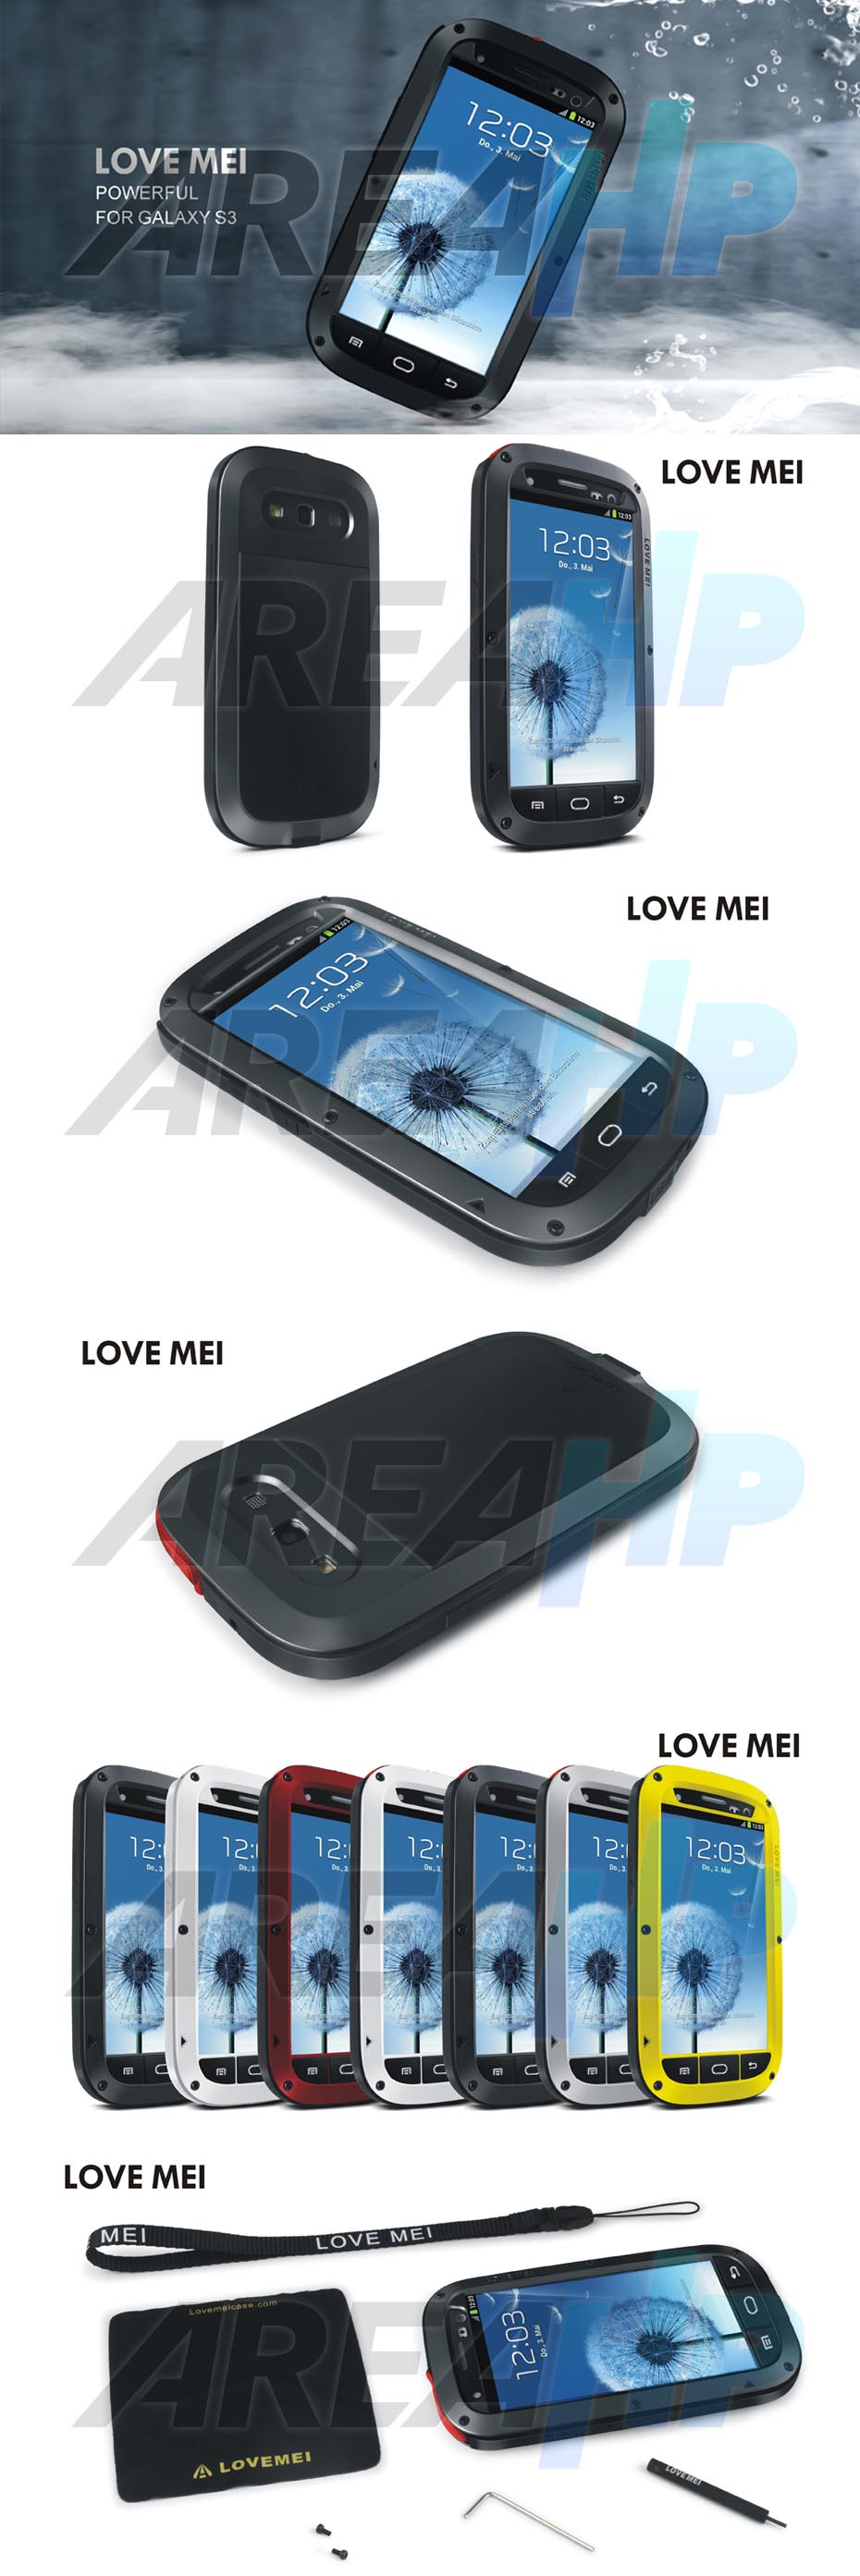 Love Mei Powerful Case for Samsung S3 I9300 Overview